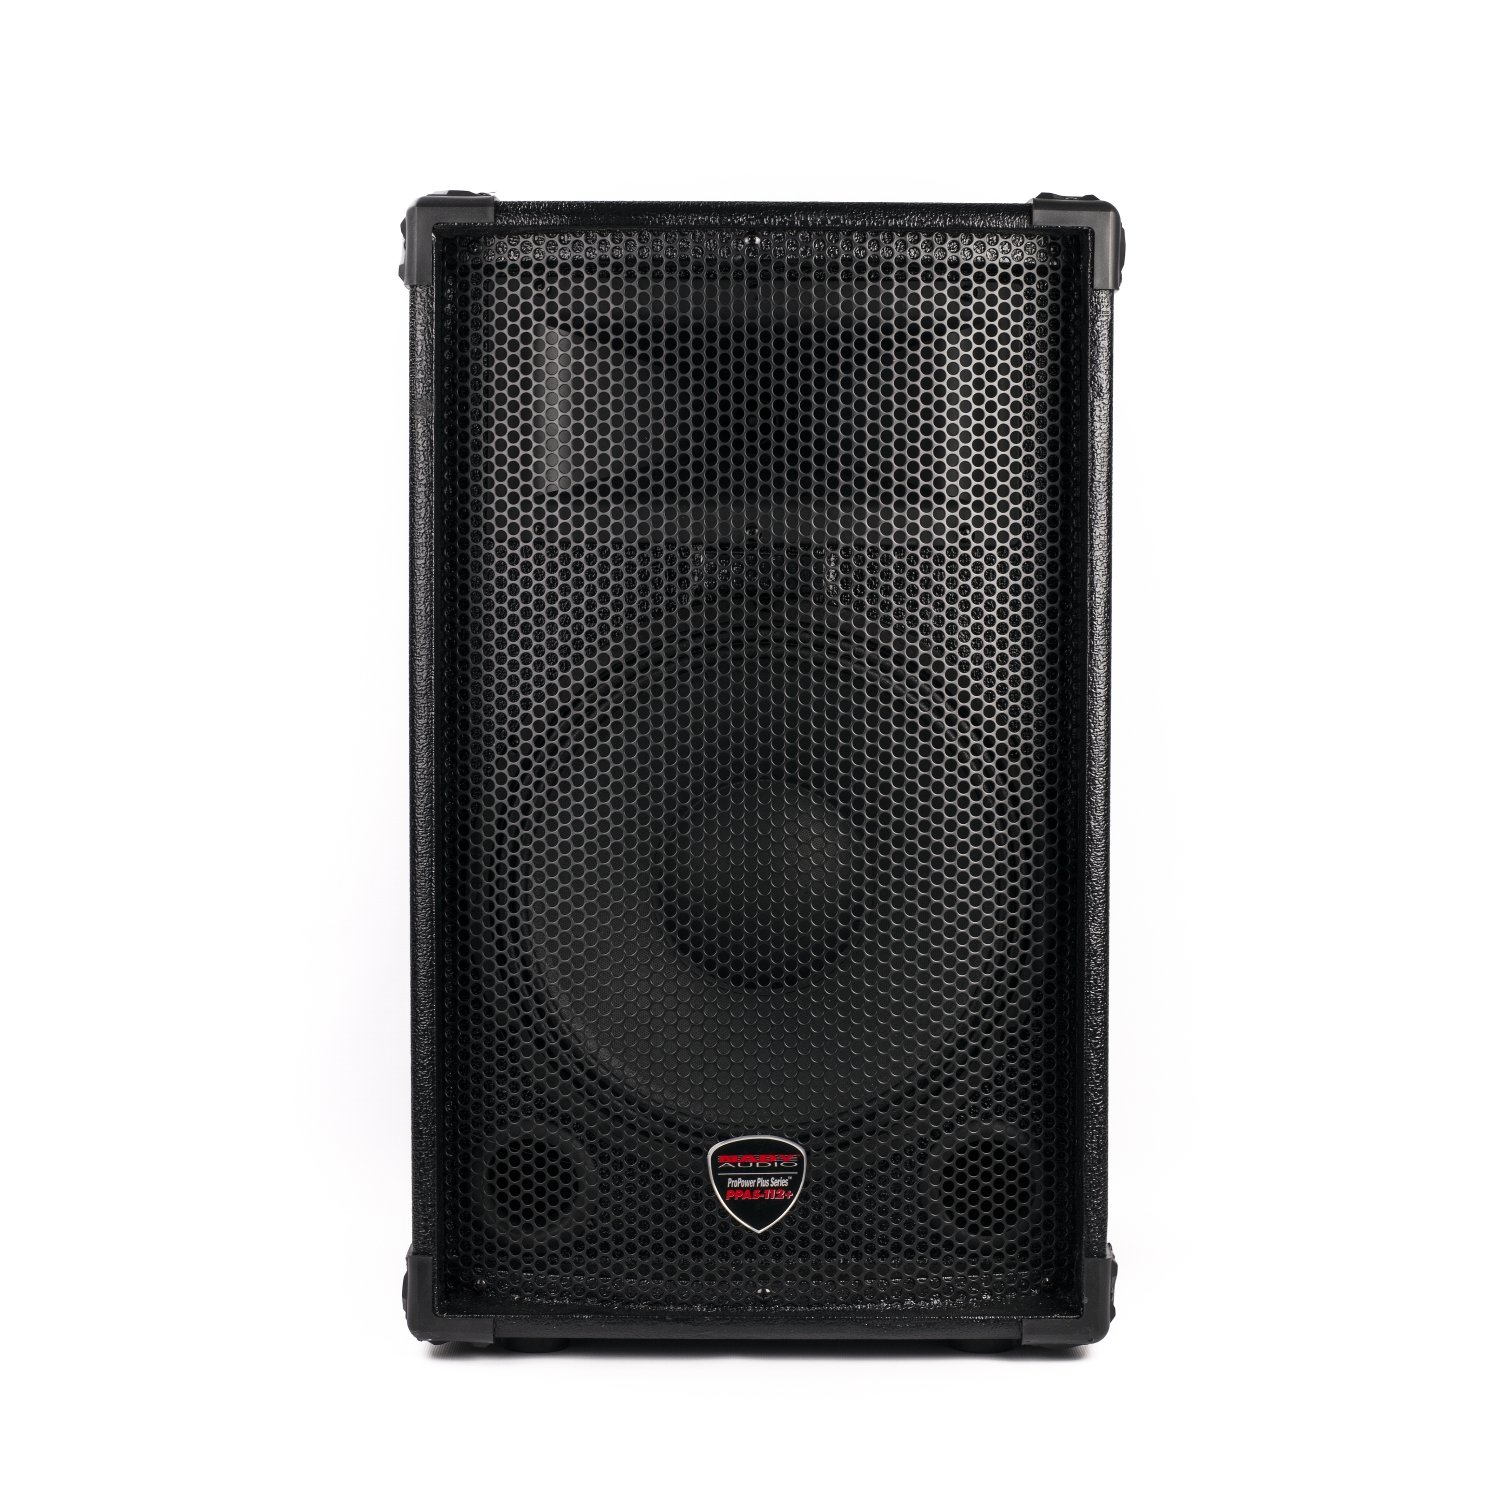 "Nady PPAS-112+ / Full Range 2-Way Powered PA speaker / 100W class AB amp / 12"" woofer / Tolex covered with carrying handles"